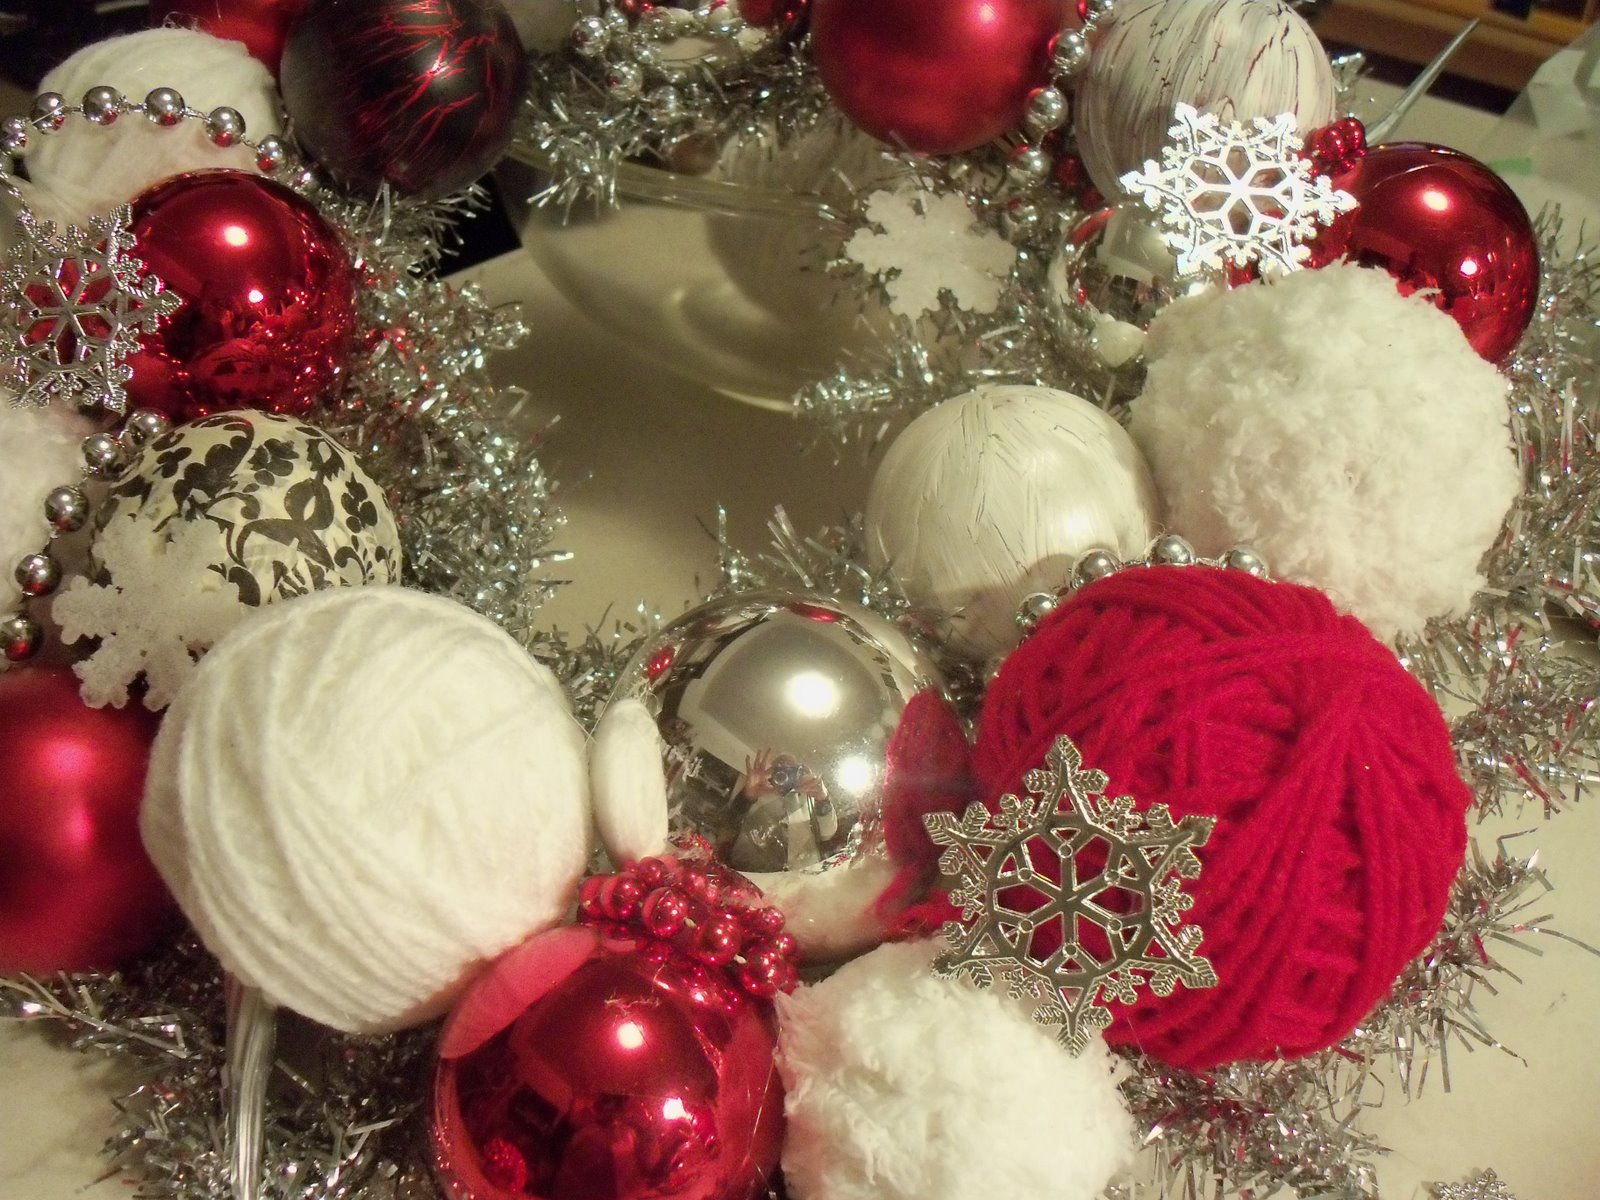 visit etsy shop - Red White And Turquoise Christmas Decor